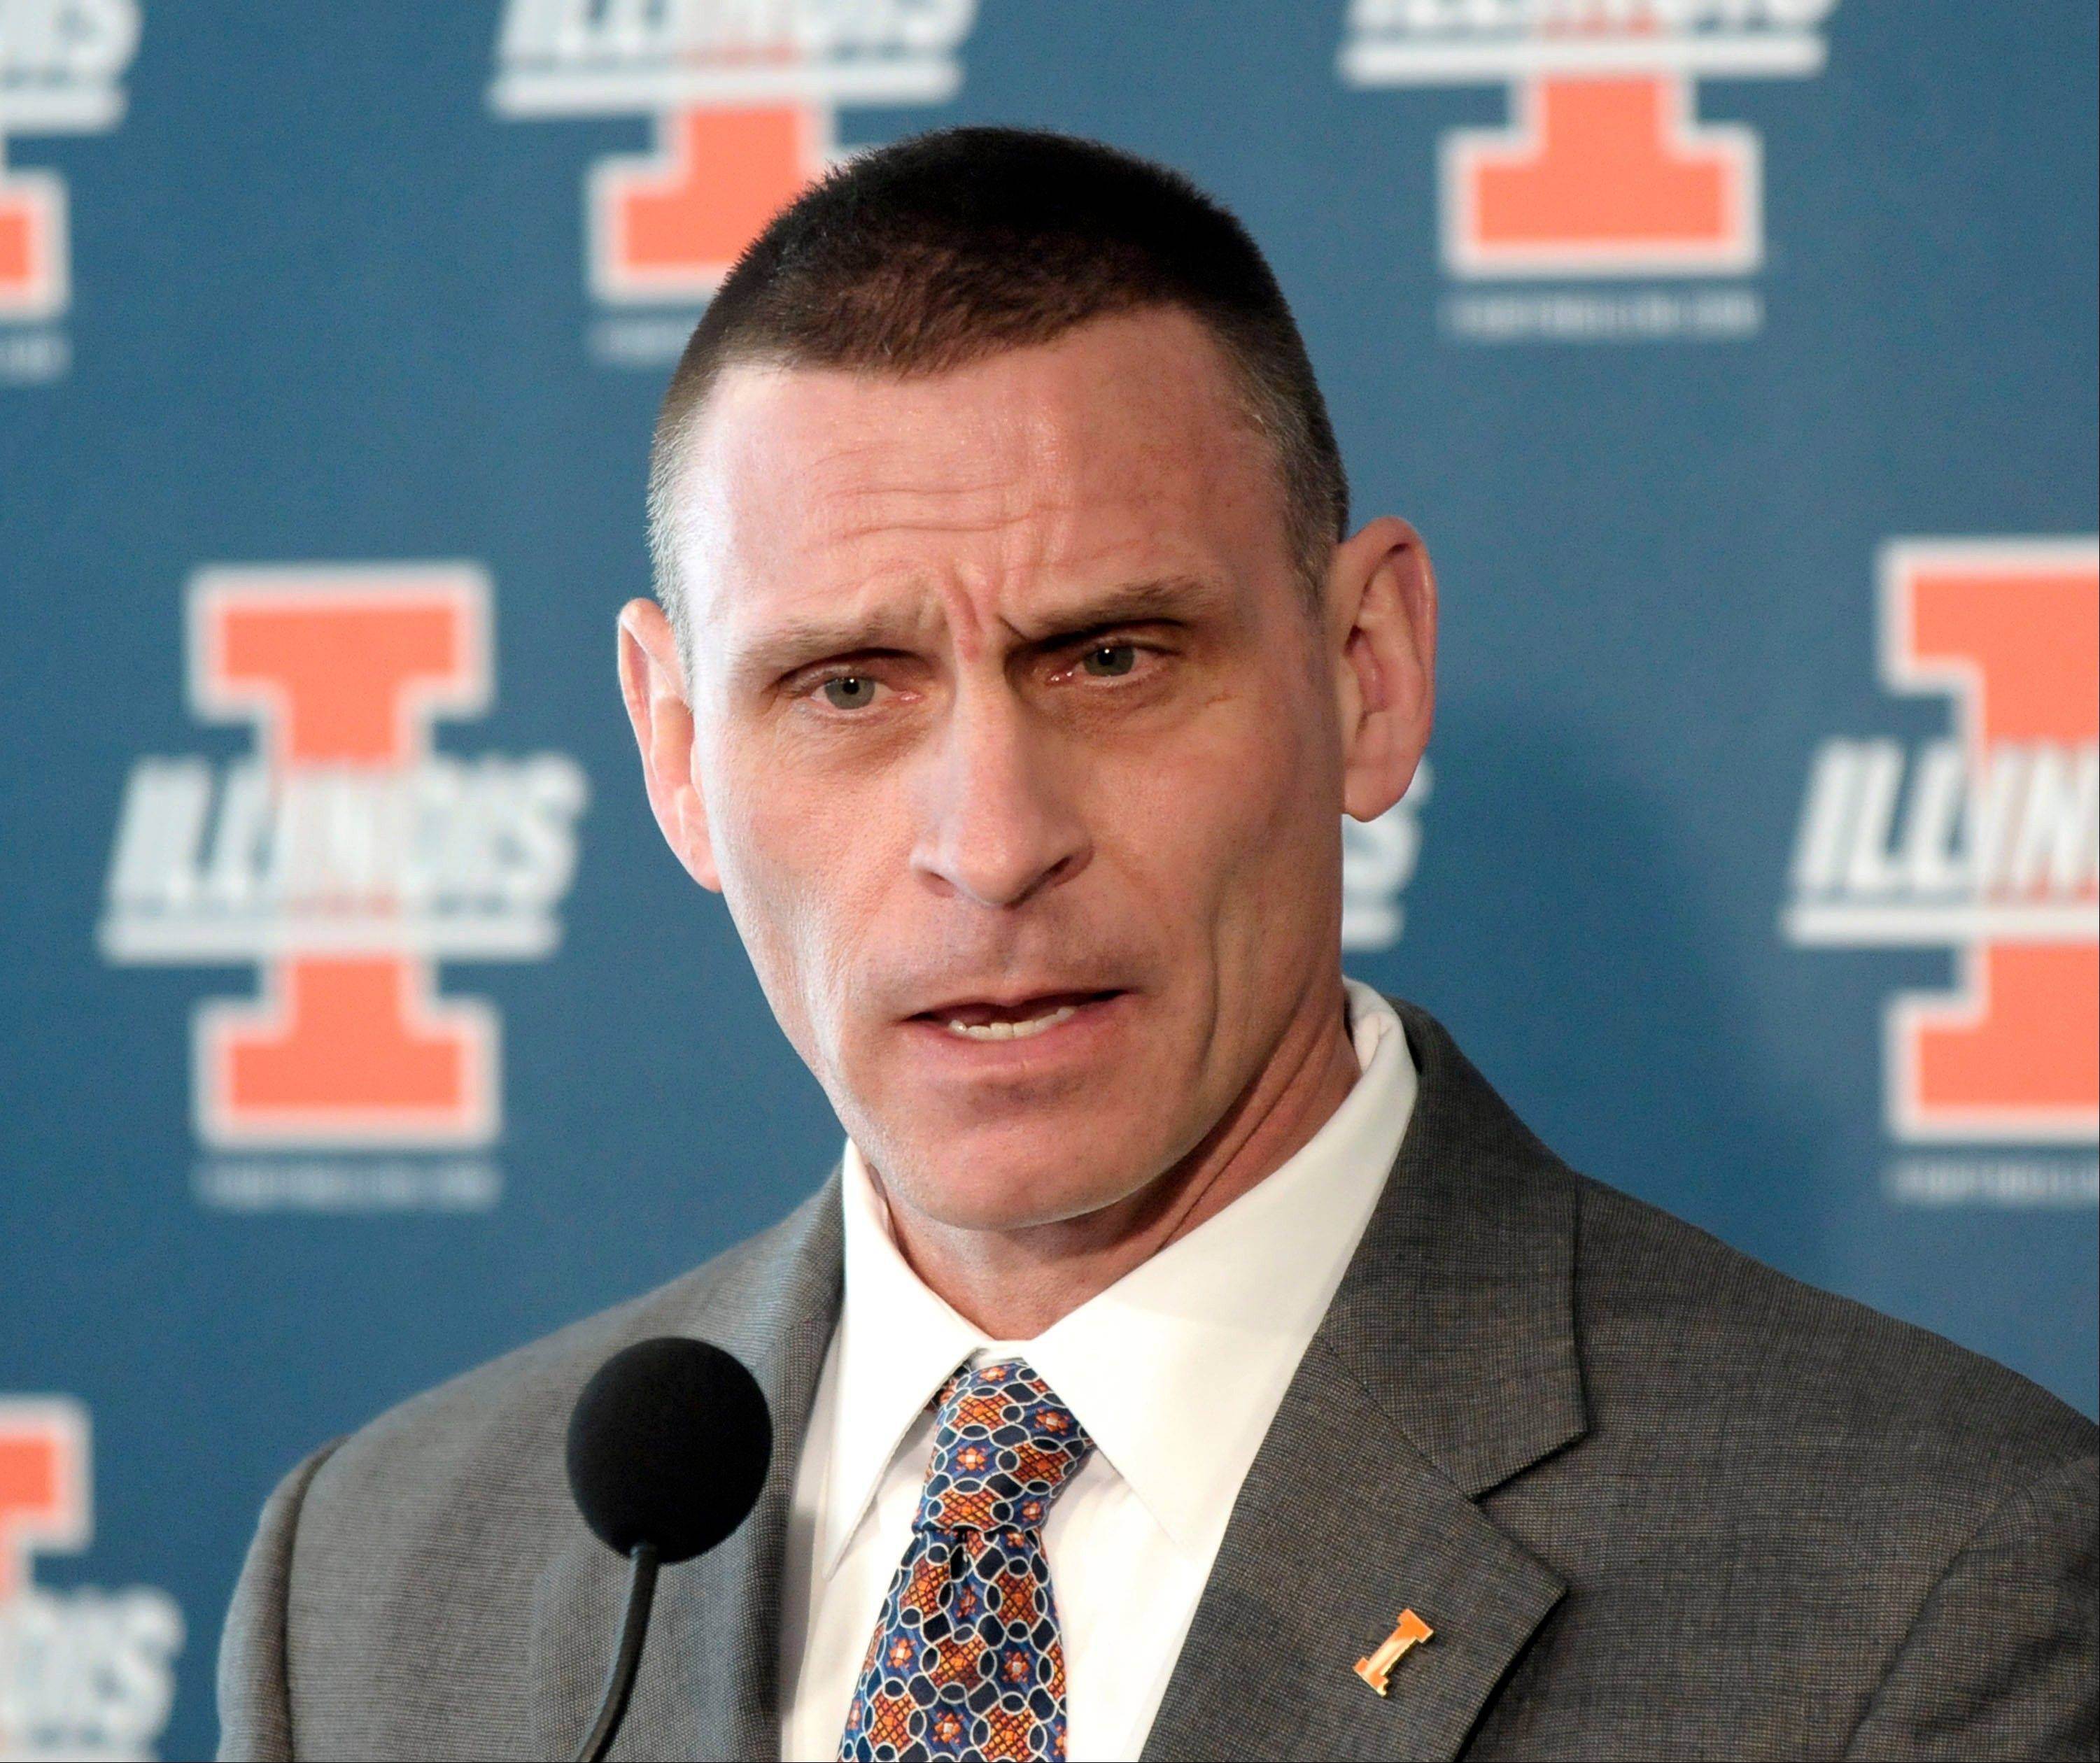 Illinois athletic director Mike Thomas